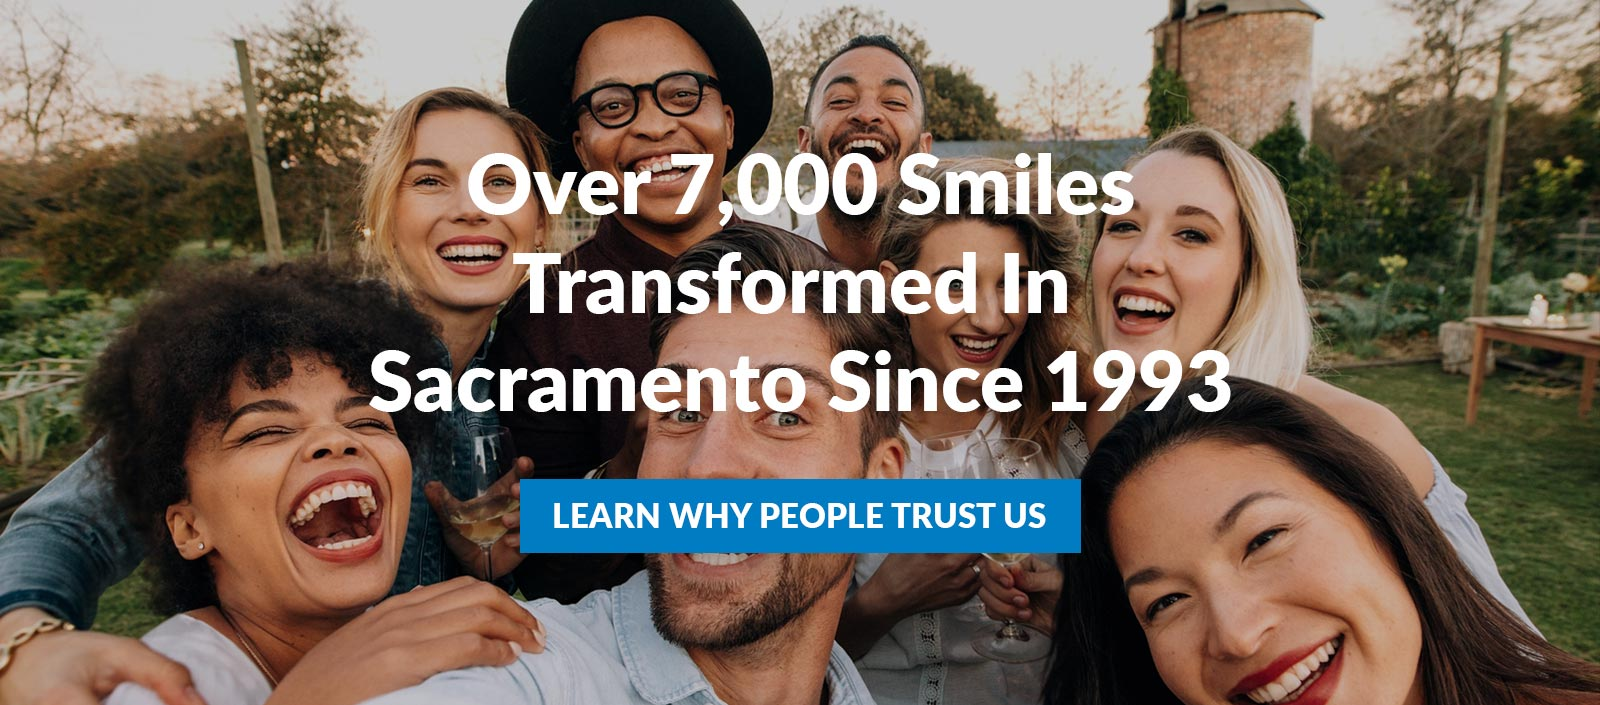 over 7000 smiles transformed since 1993